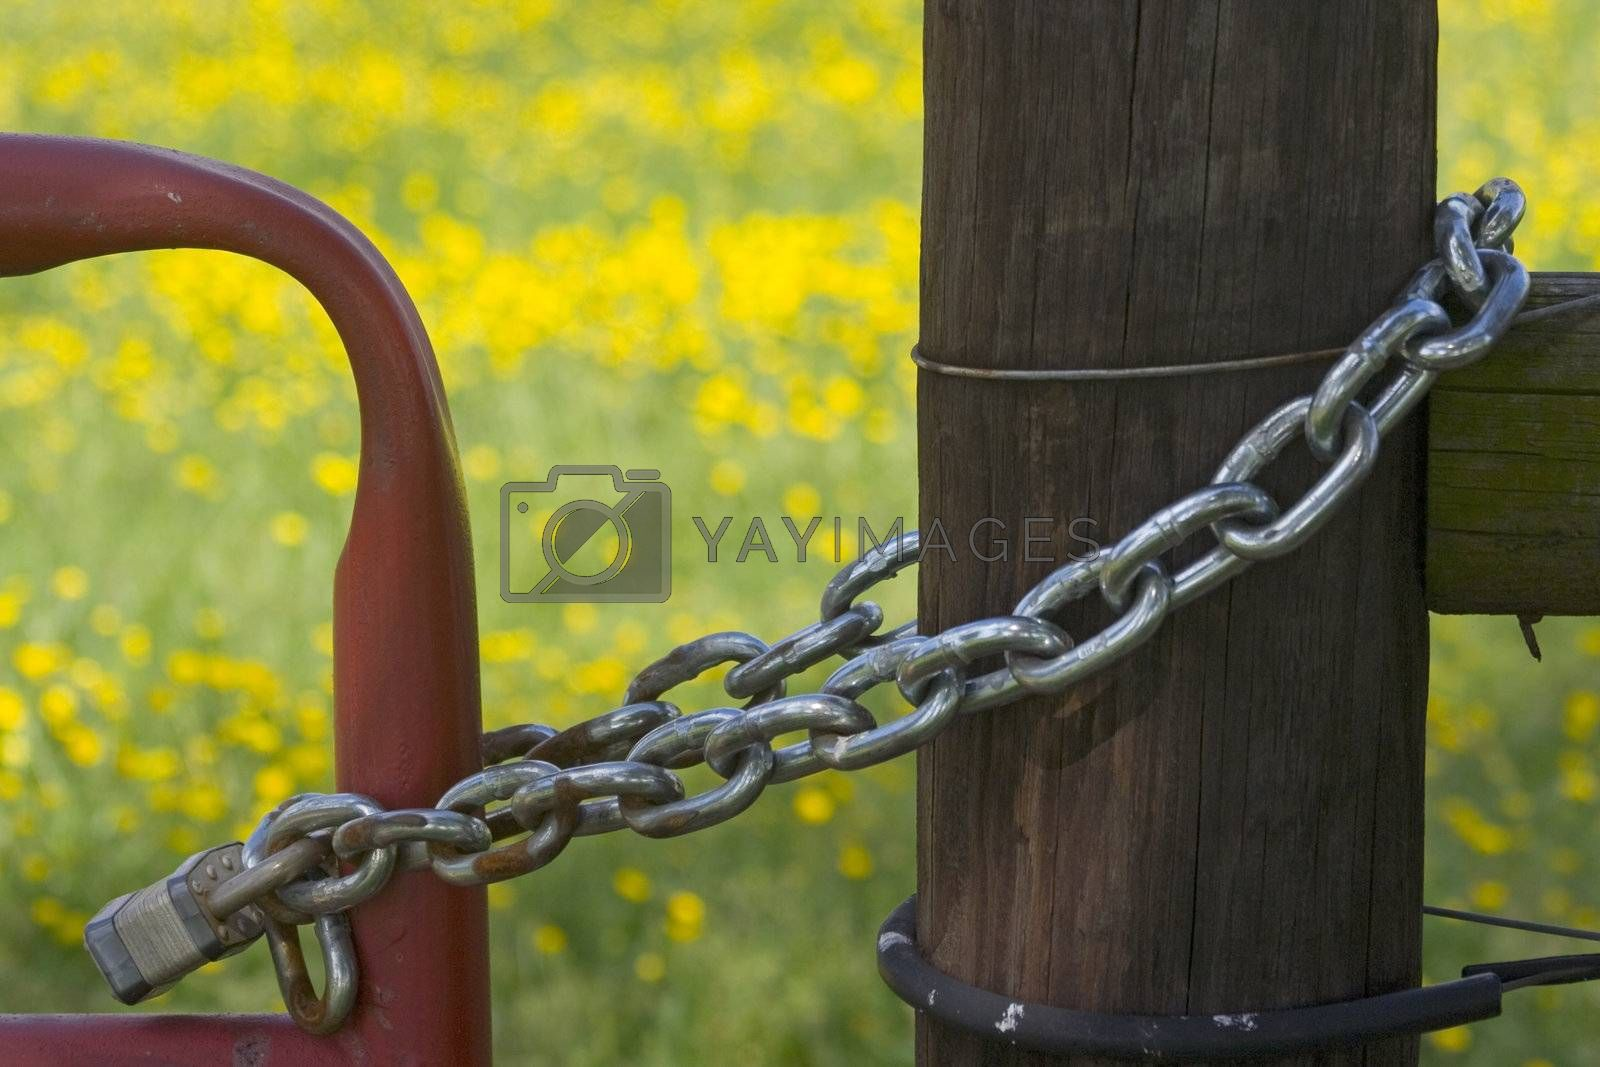 A gate locked up to a fence post with a padlock and chain.